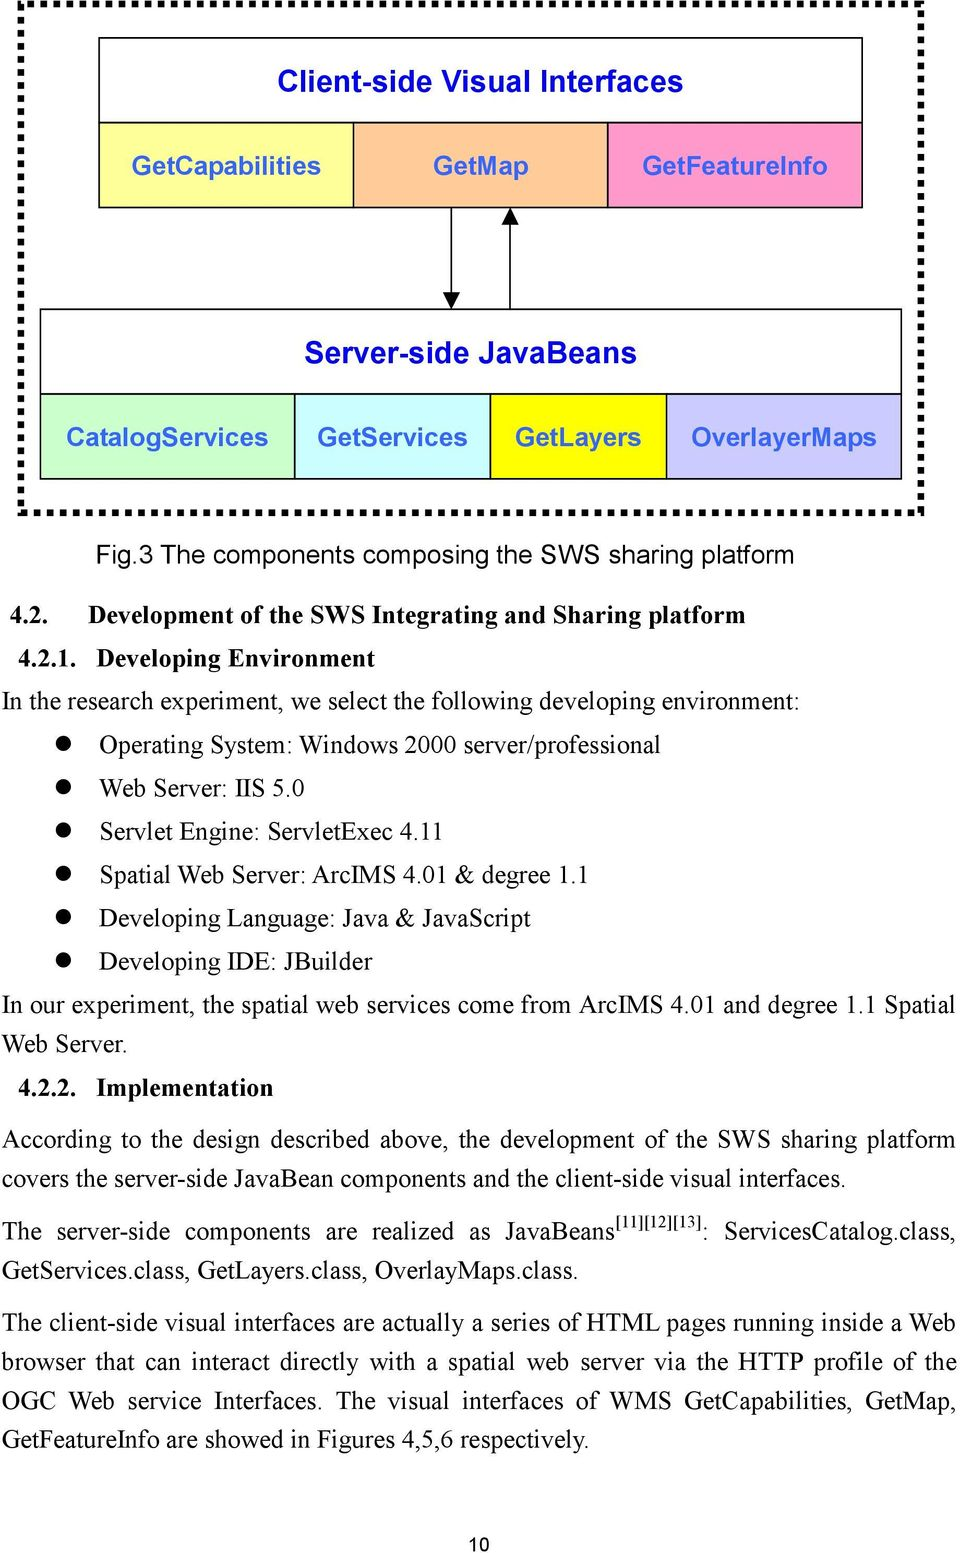 Operating System: Windows 2000 server/professional! Web Server: IIS 5.0! Servlet Engine: ServletExec 4.11! Spatial Web Server: ArcIMS 4.01 & degree 1.1! Developing Language: Java & JavaScript!